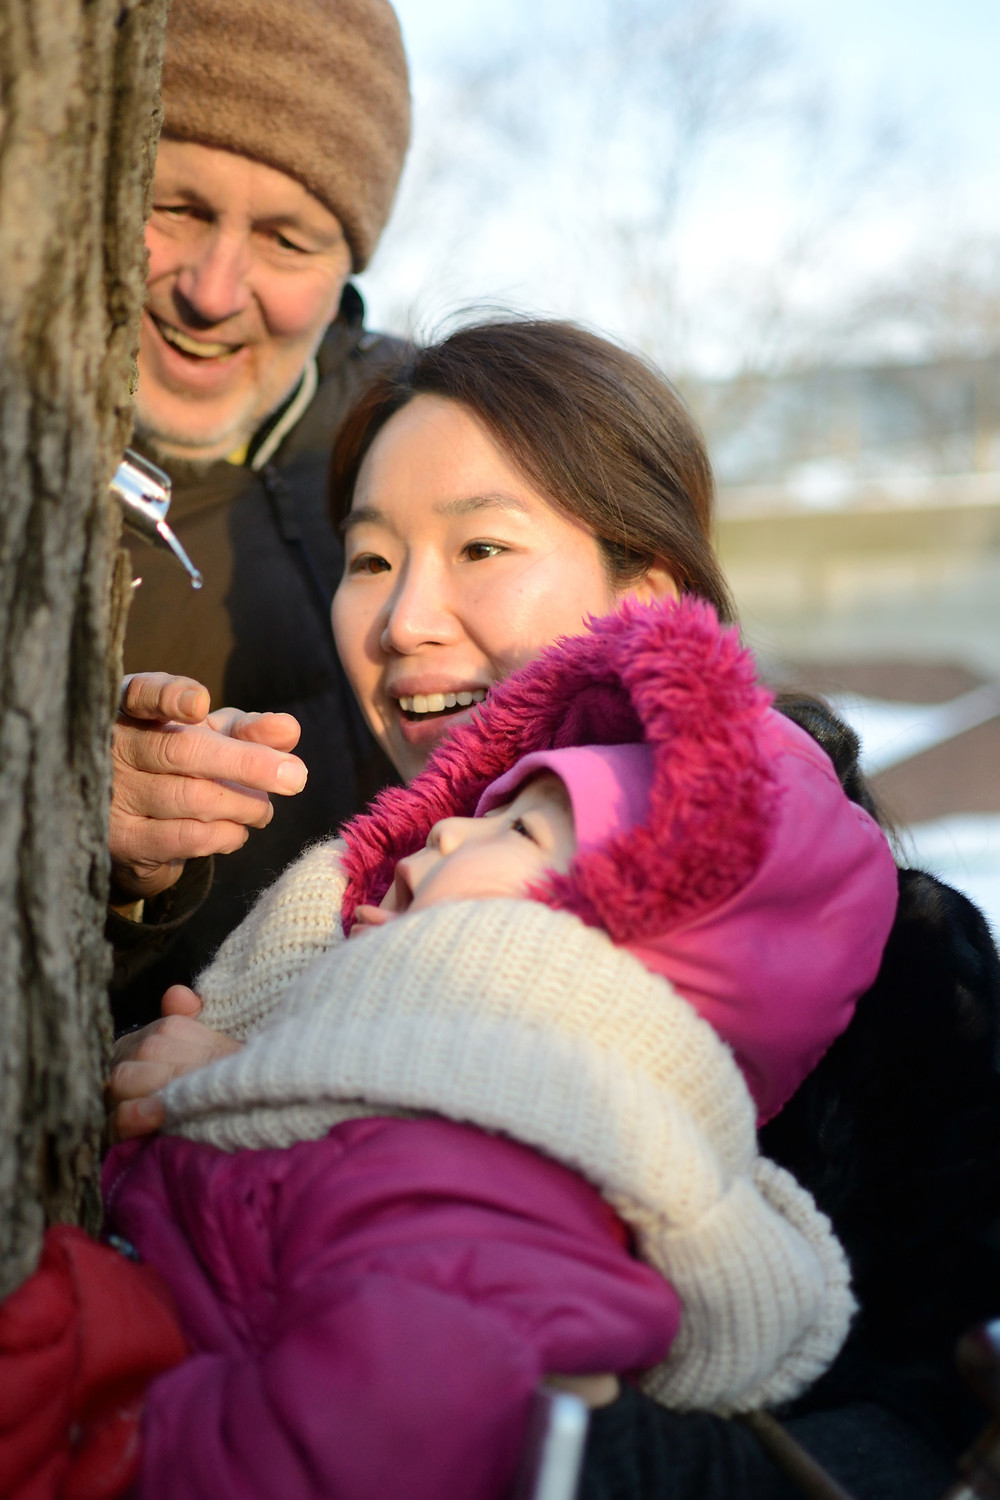 Maple Sugaring at The Nature Place - Free Event | March 3rd, Bergen County Moms